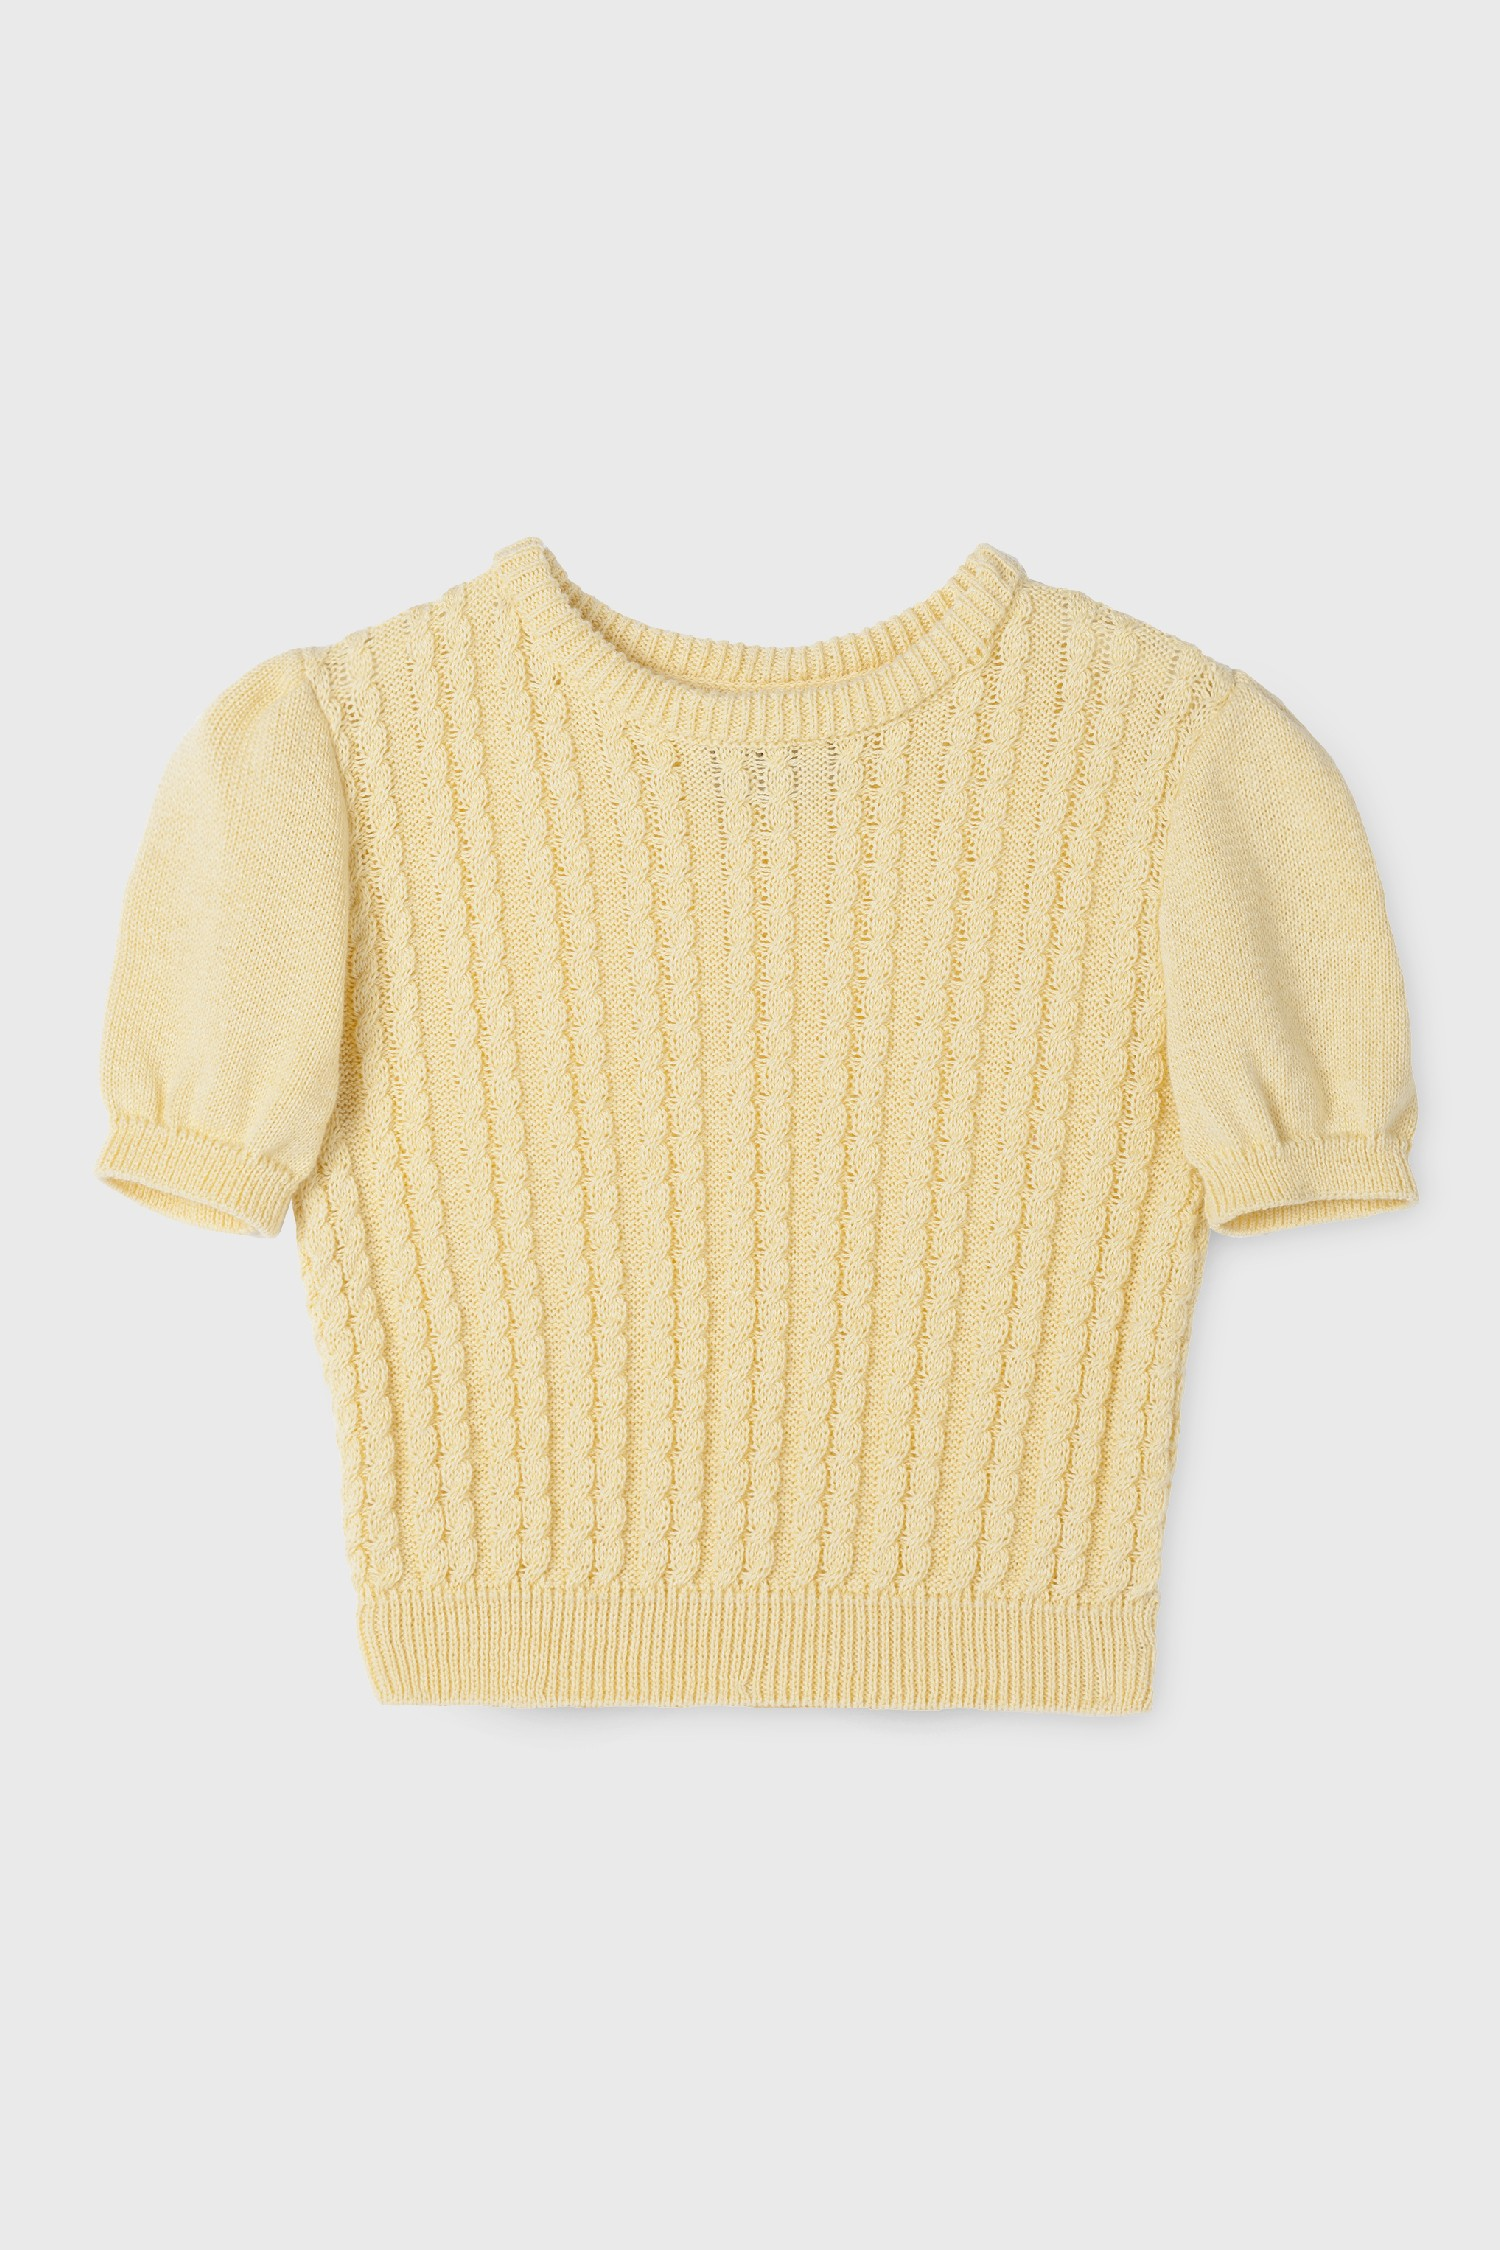 YELLOW COLLARED SWEATER